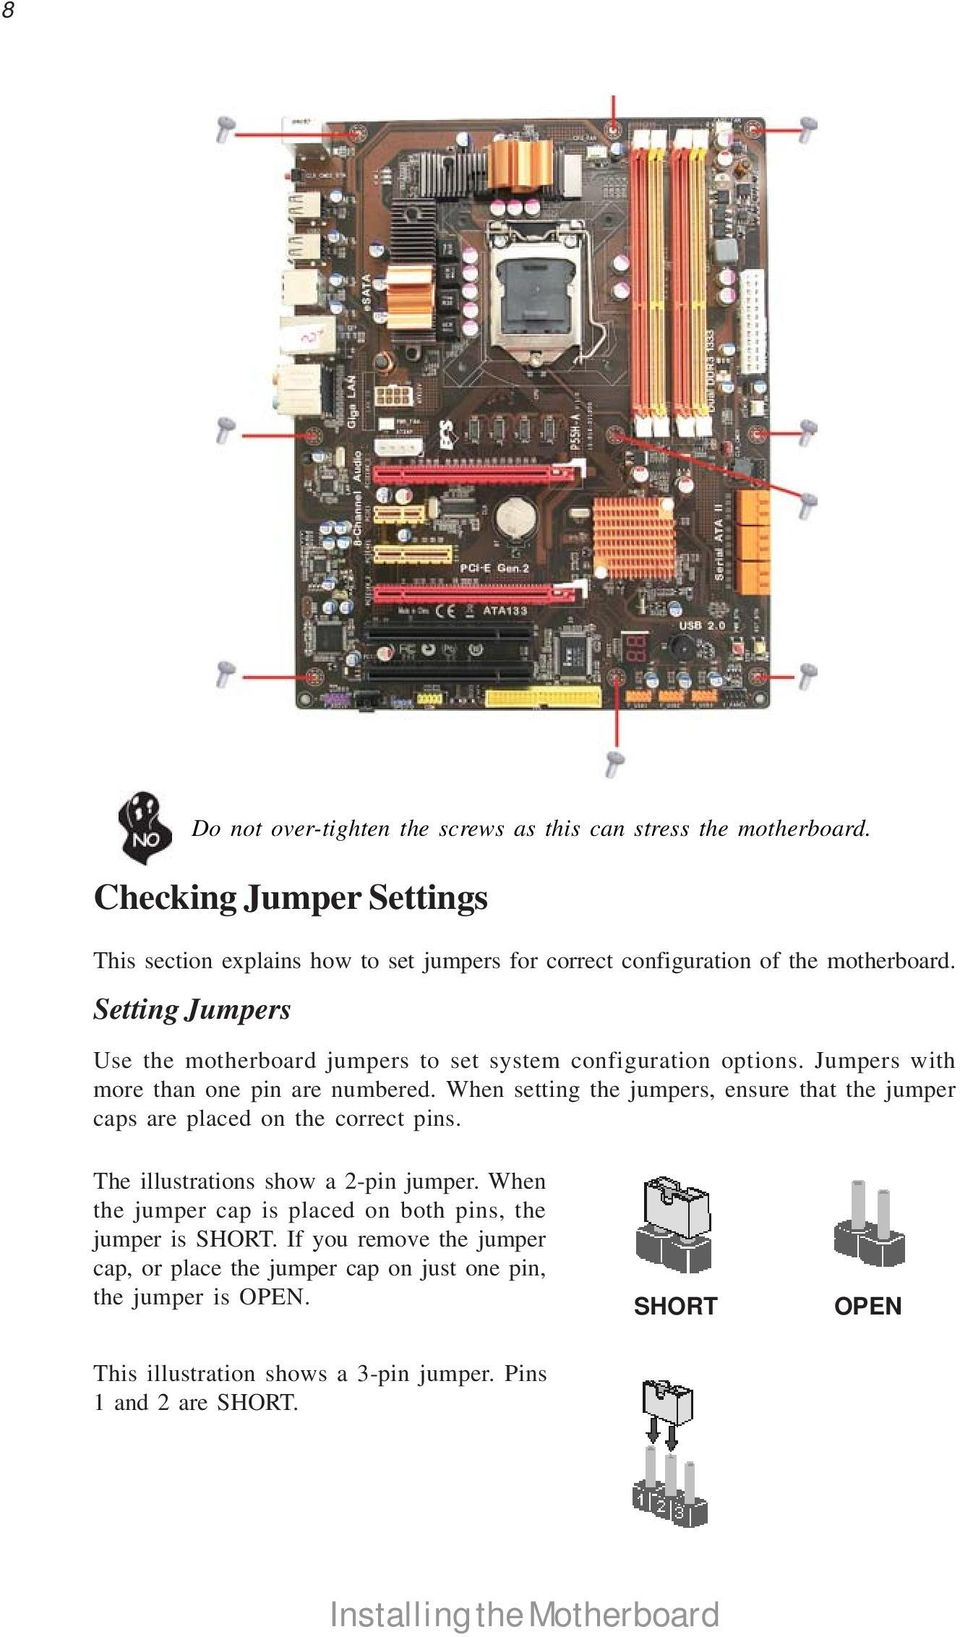 Setting Jumpers Use the motherboard jumpers to set system configuration options. Jumpers with more than one pin are numbered.